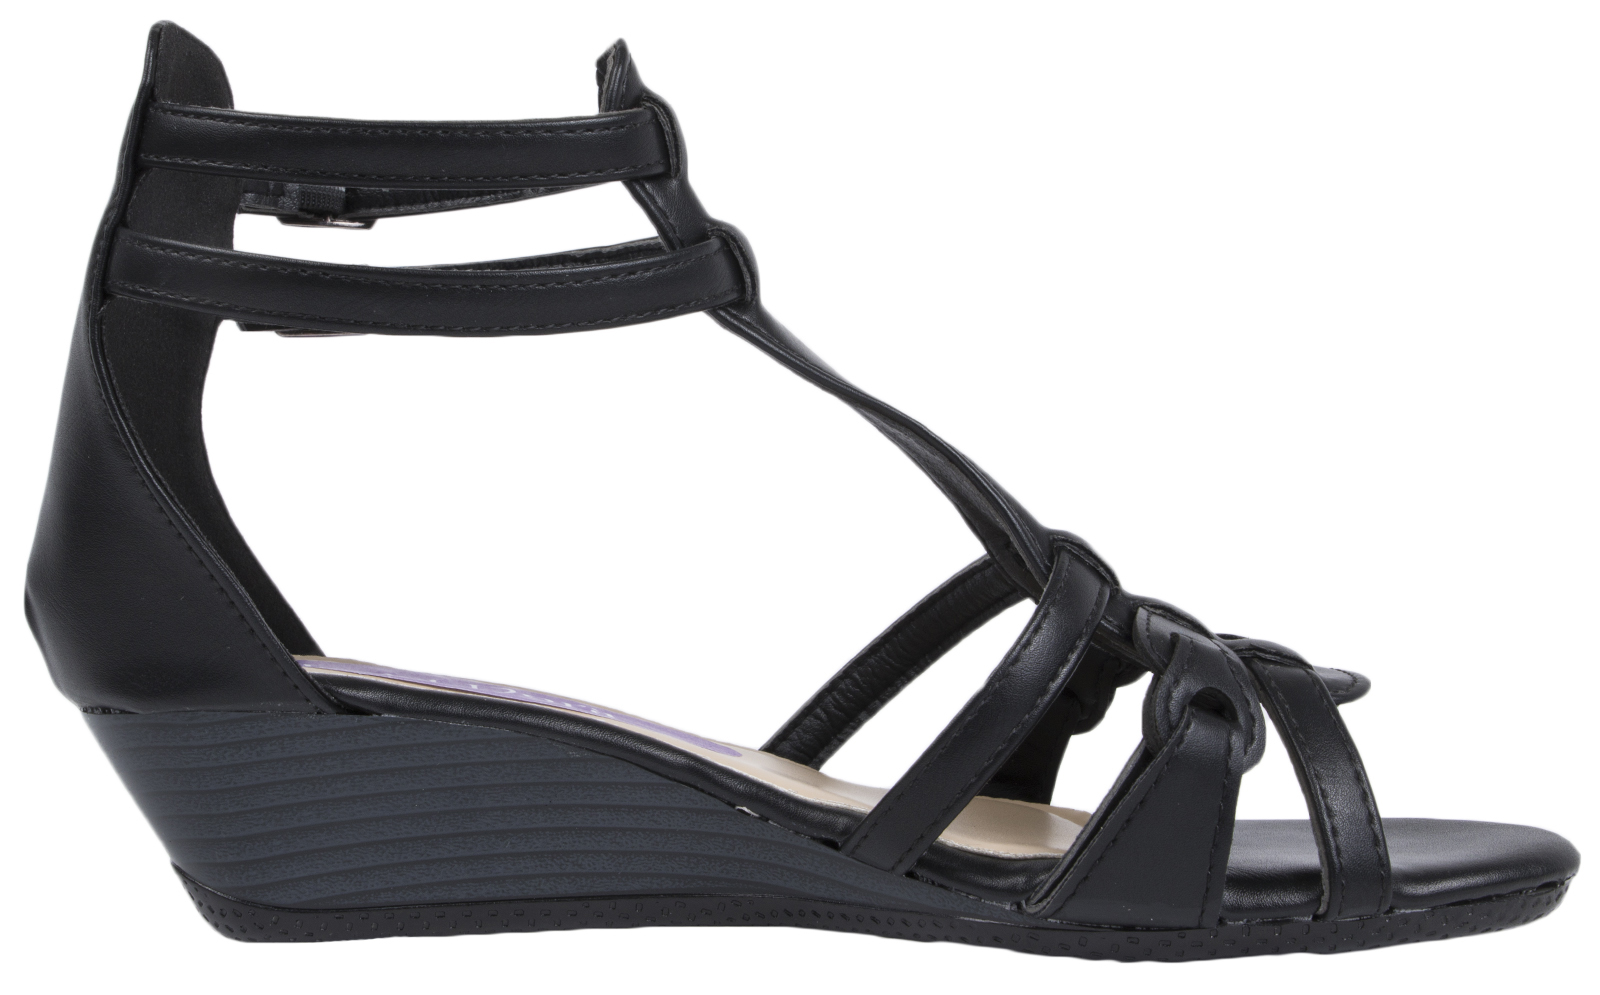 Womens Stry Wedge Sandals Low Heel Summer Shoes